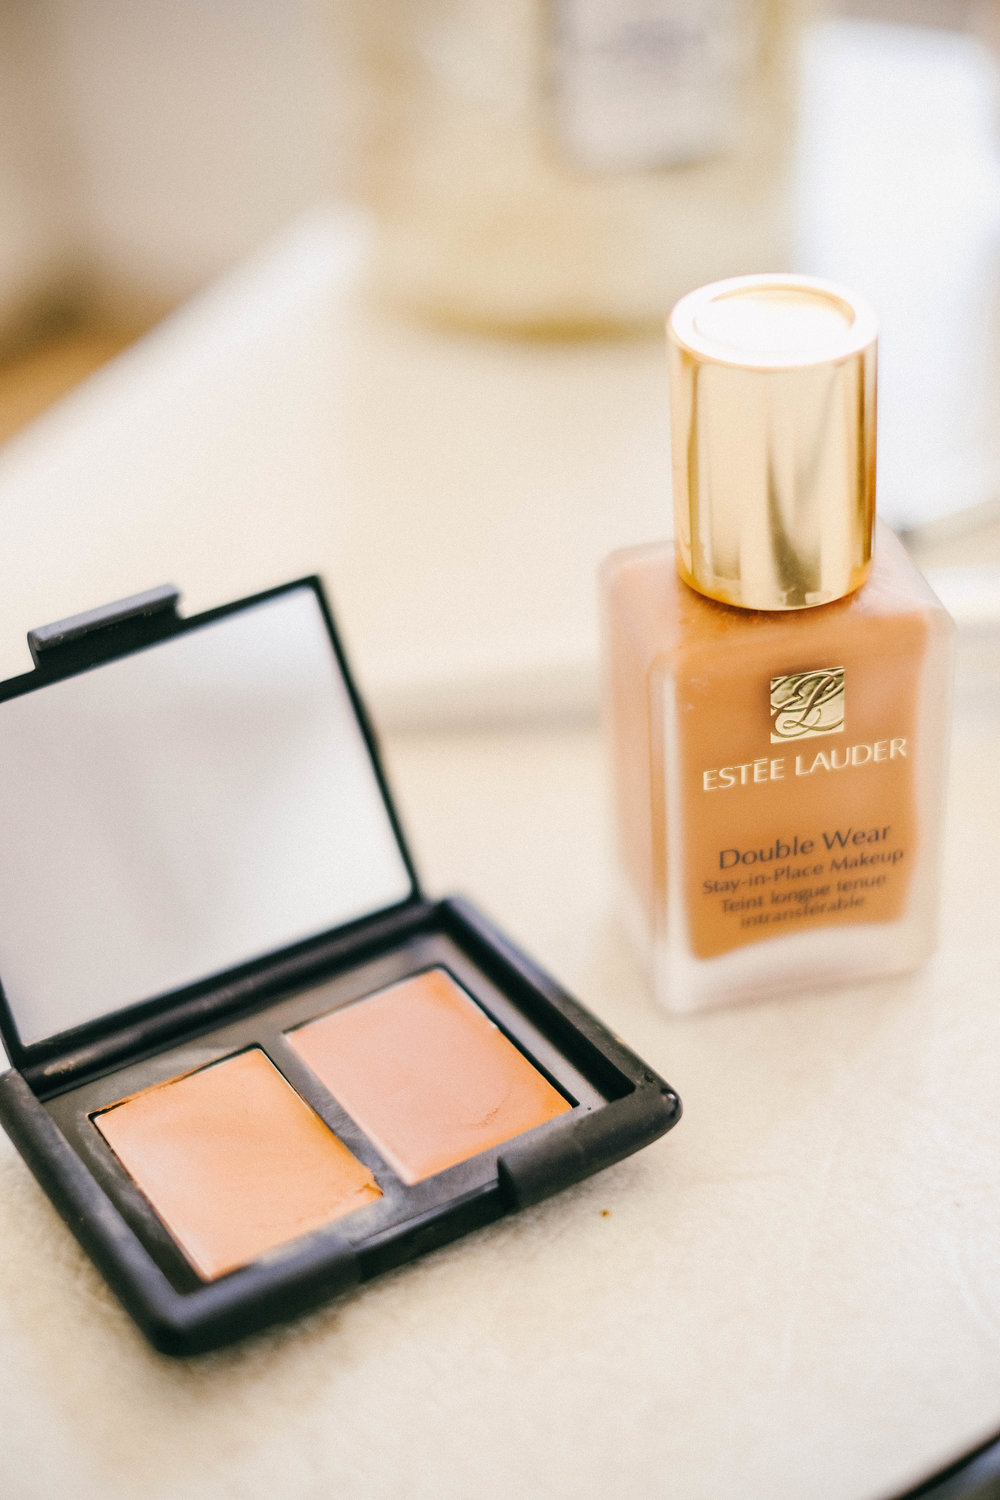 For my face, I'm an avid fan of Estee Lauder Double-Wear foundation. I've tried many of the latest trends in face makeup...BB cream, CC cream, Cream to Powder...you name it. I'm a fan of Tarte and Laura Mercier foundations as well. But out of those, I chose Estee Lauder as my favorite. It's simply the best. For me, it goes on lightweight and has great, matte coverage and it lasts all day. I don't feel like I'm wearing too much foundation. It's not super light but not super heavy or cakey either. Sometimes I will wear concealer and I love using the Nars concealer duo underneath my eyes or to cover blemishes. It goes on really smooth and covers everything perfectly and evenly. I also will use the Nars stick but I like the duo as it gives me two choices...a lighter shade and a darker shade.